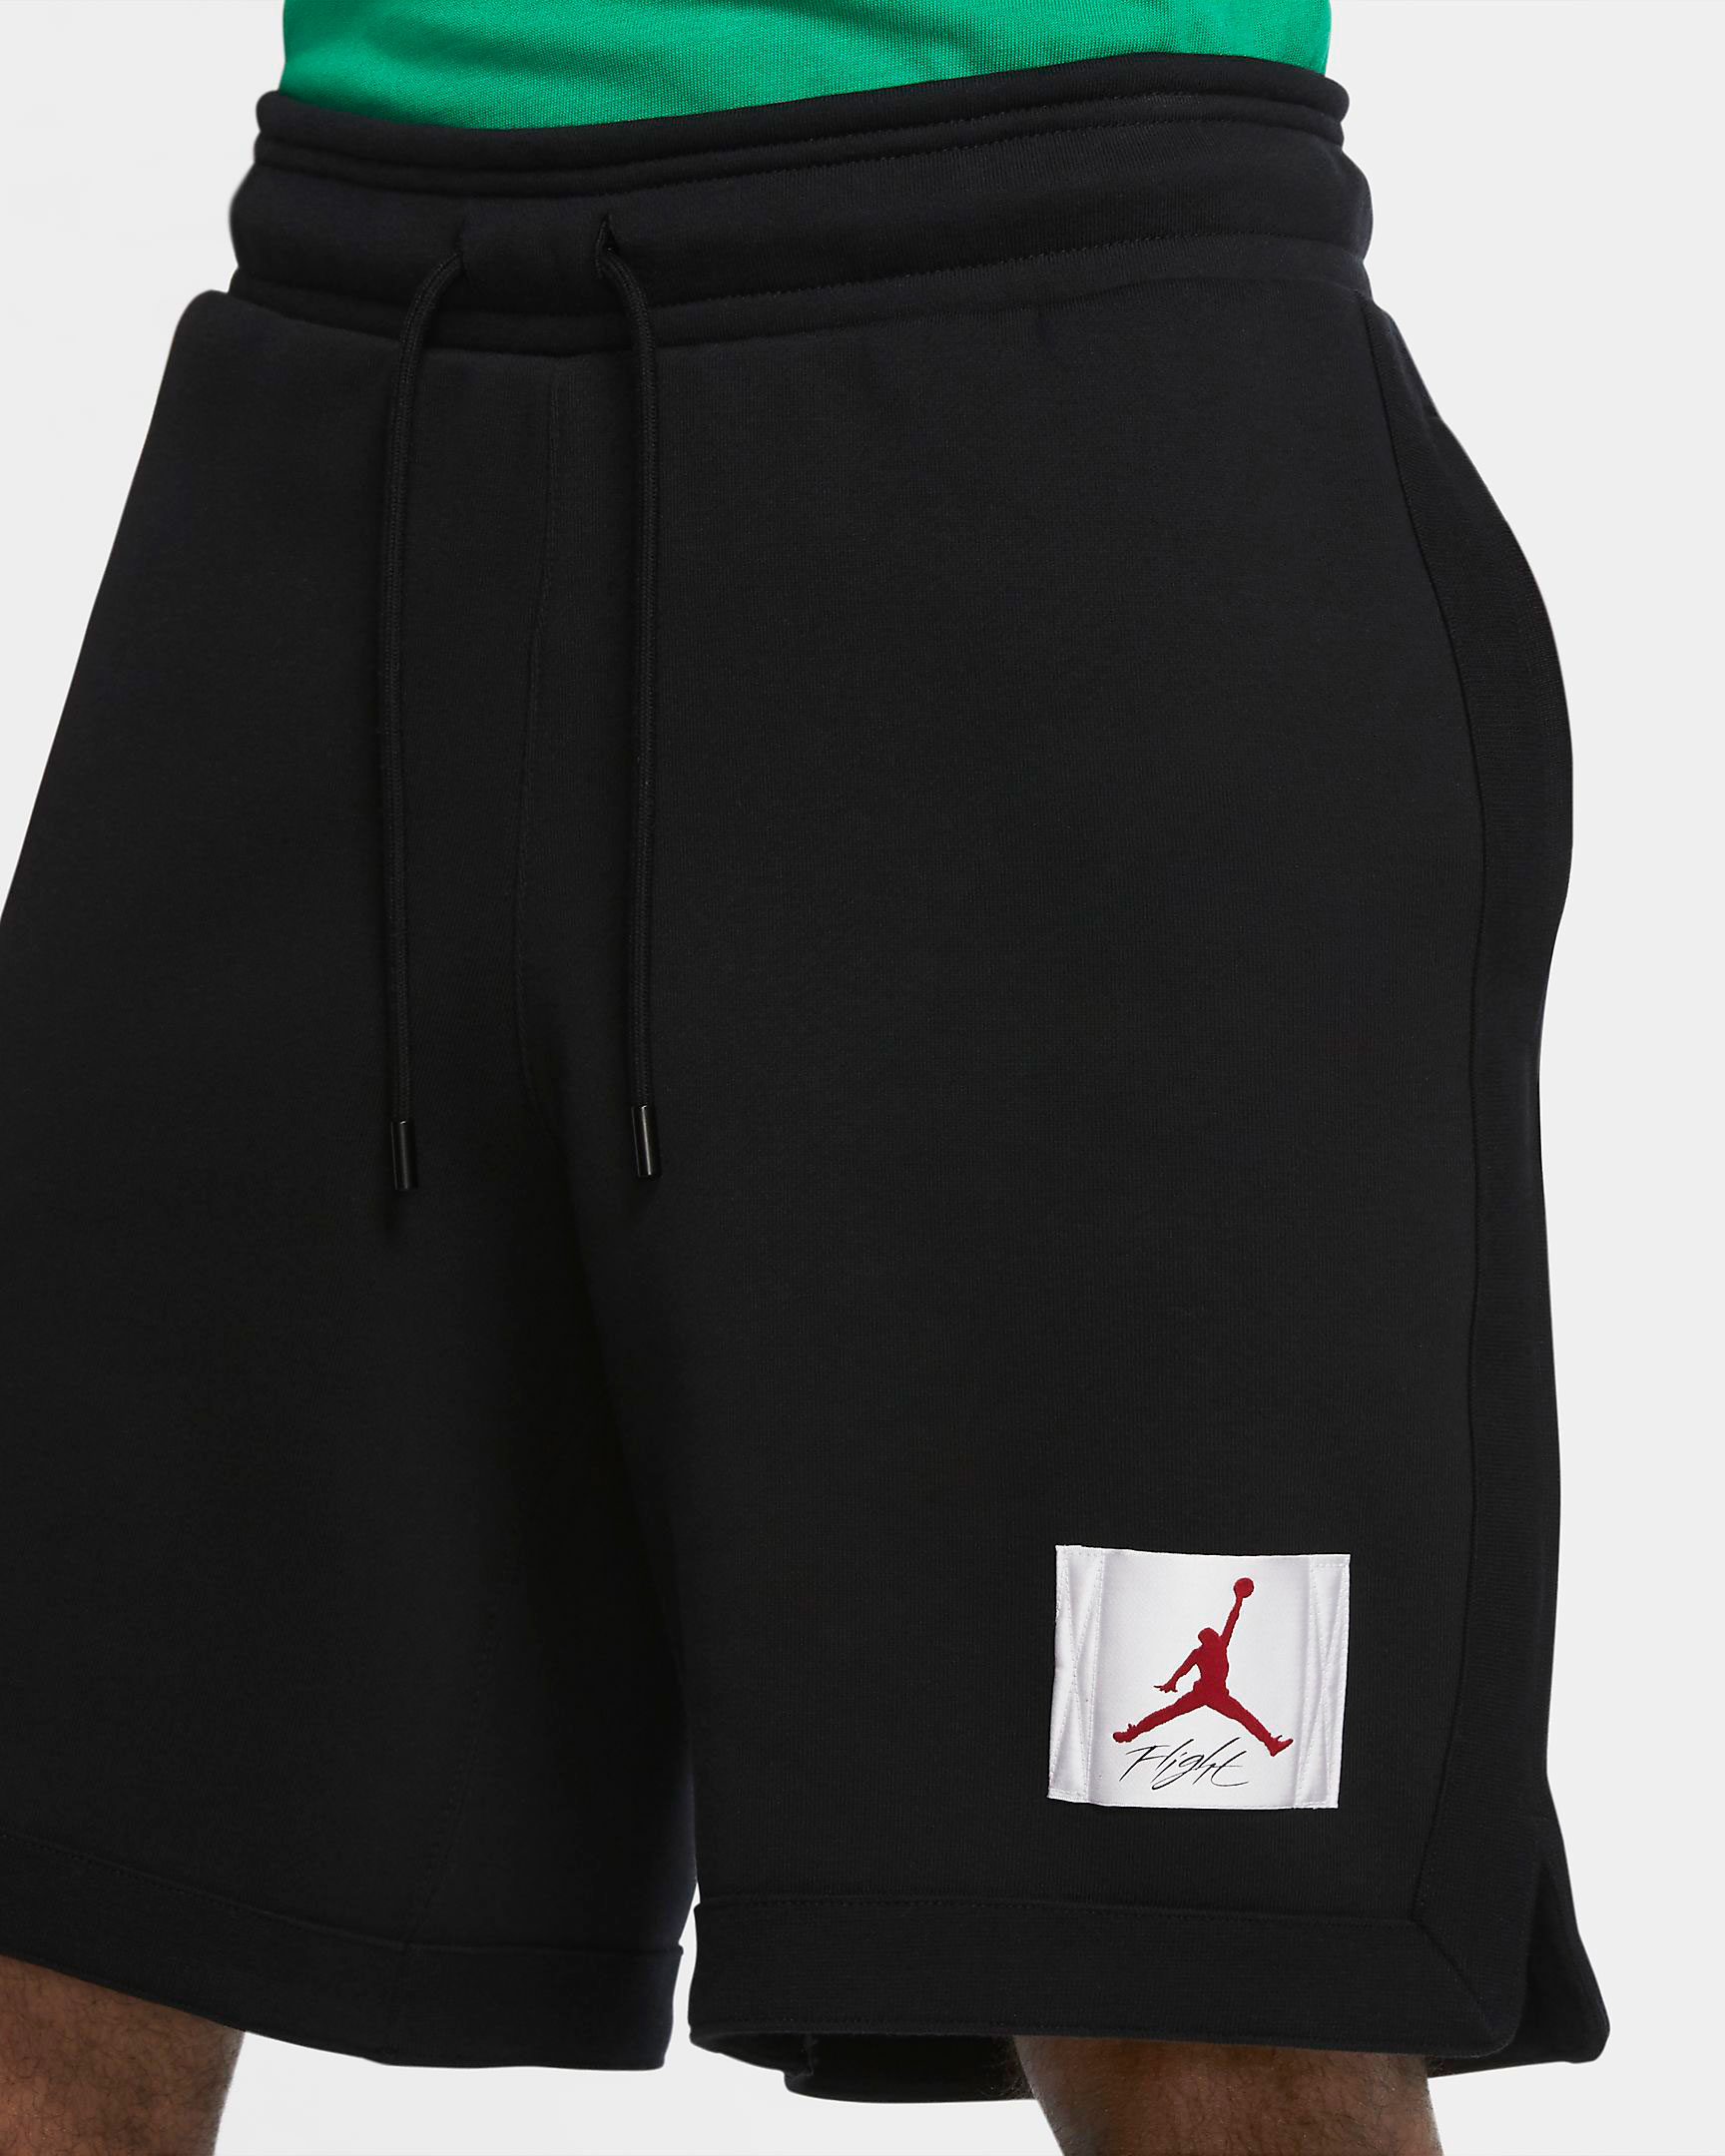 jordan-flight-fleece-shorts-black-red